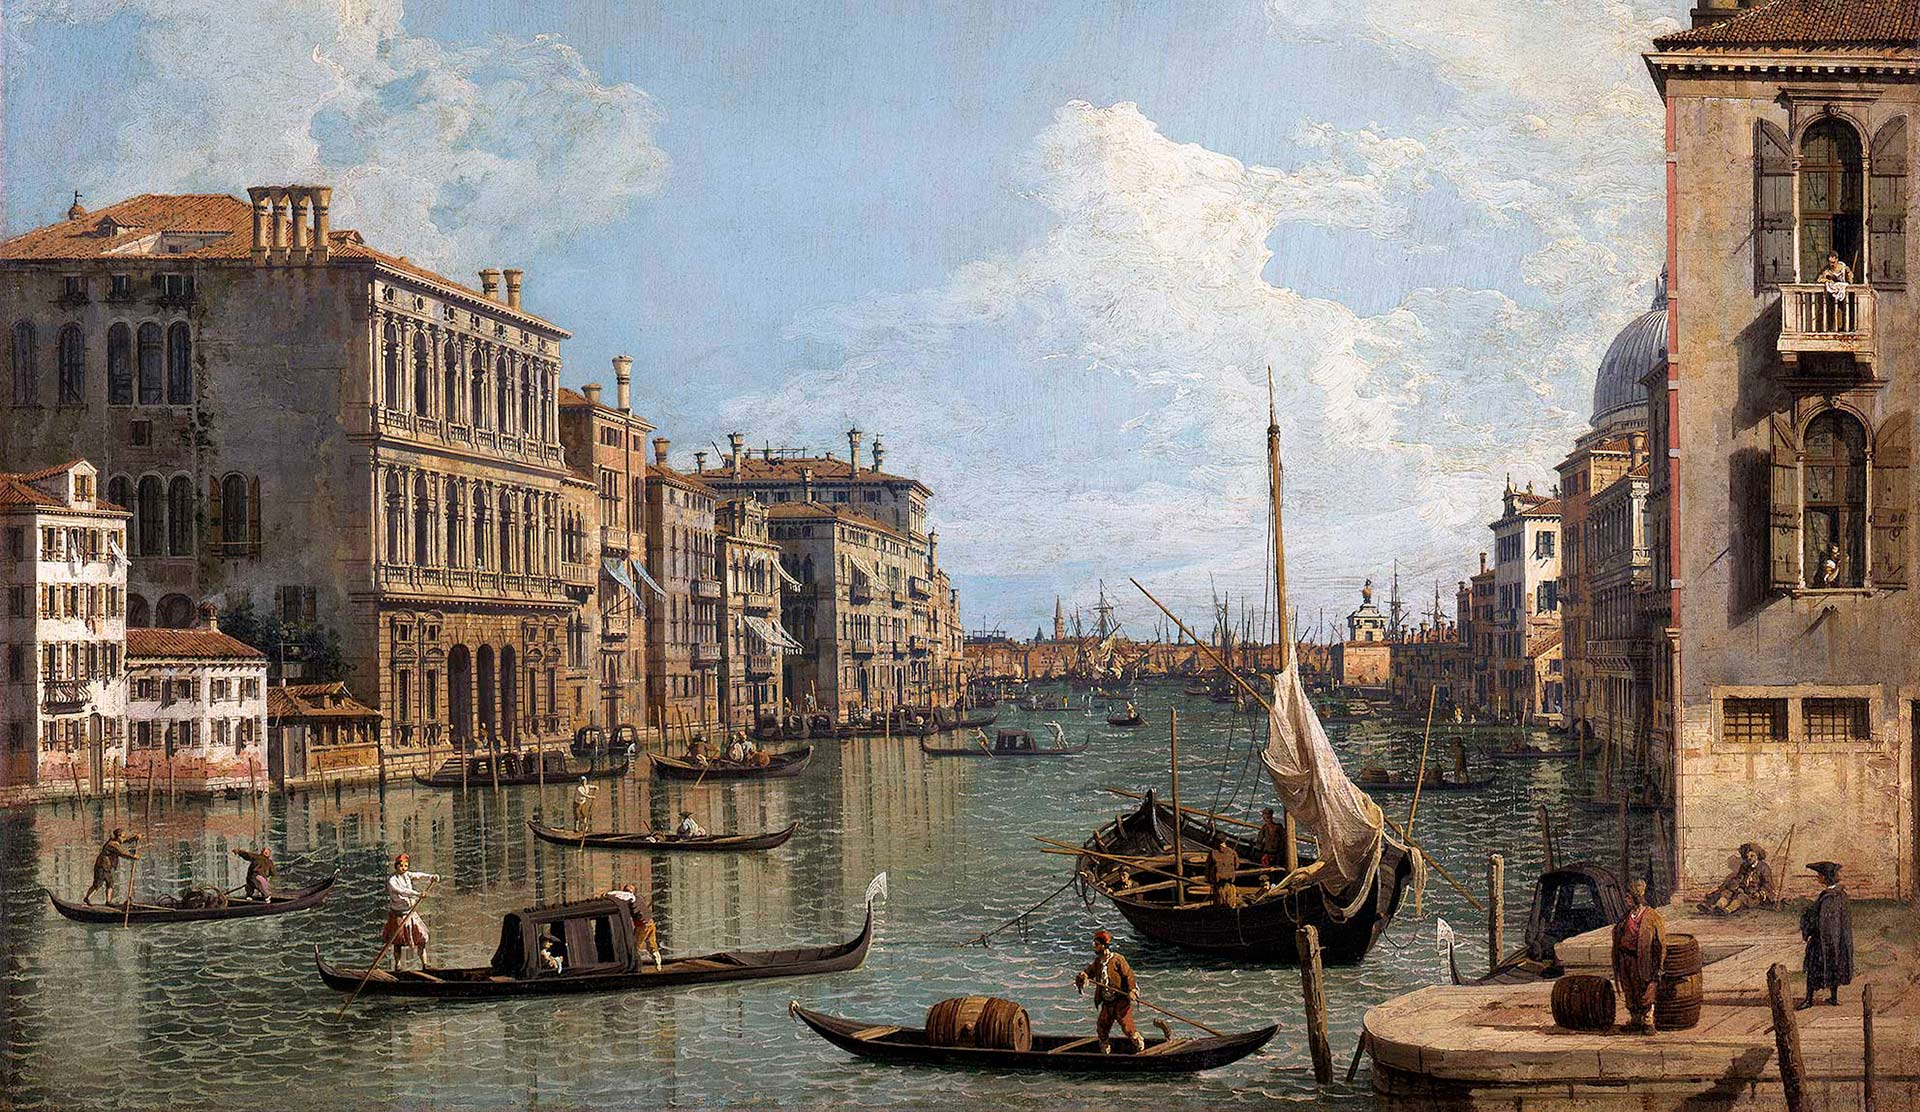 A detail from a painting by Canaletto, titled View of the Grand Canal looking toward the Punta della Dogana from Campo Sant'Ivo, dating from the 2nd third of the 18th Century.